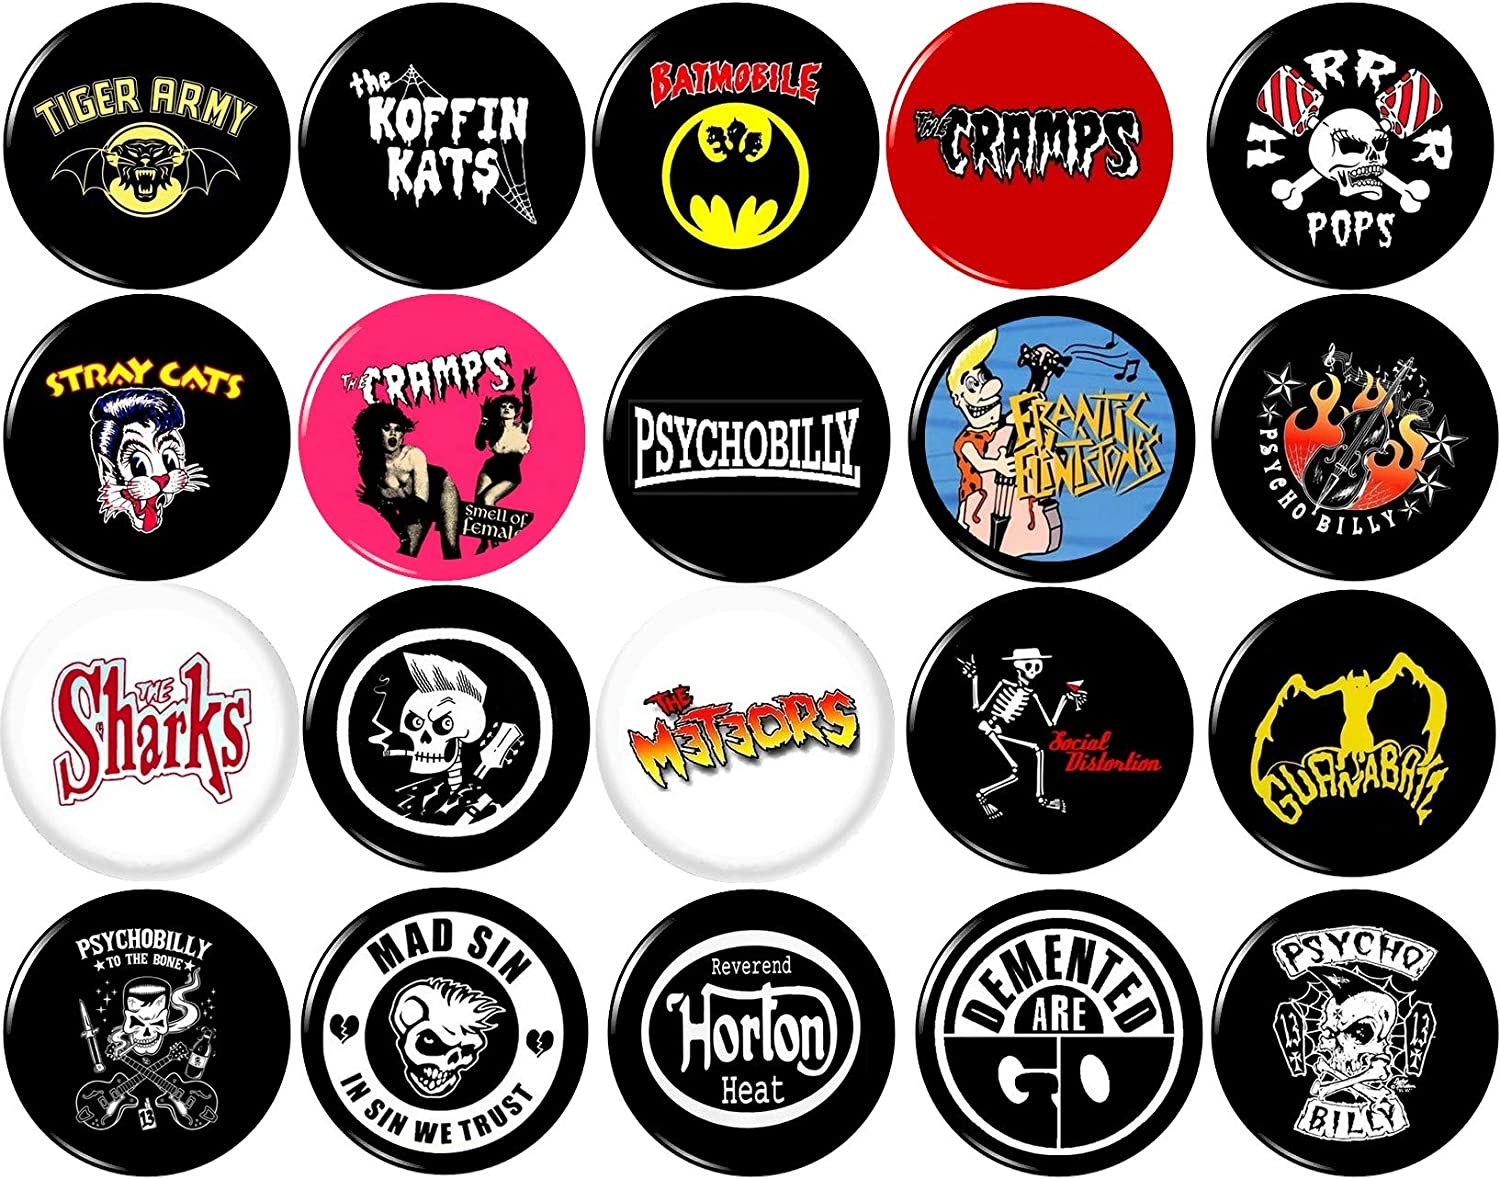 Set of 6 THE CRAMPS 25mm Badges GREAT VALUE. PSYCHOBILLY